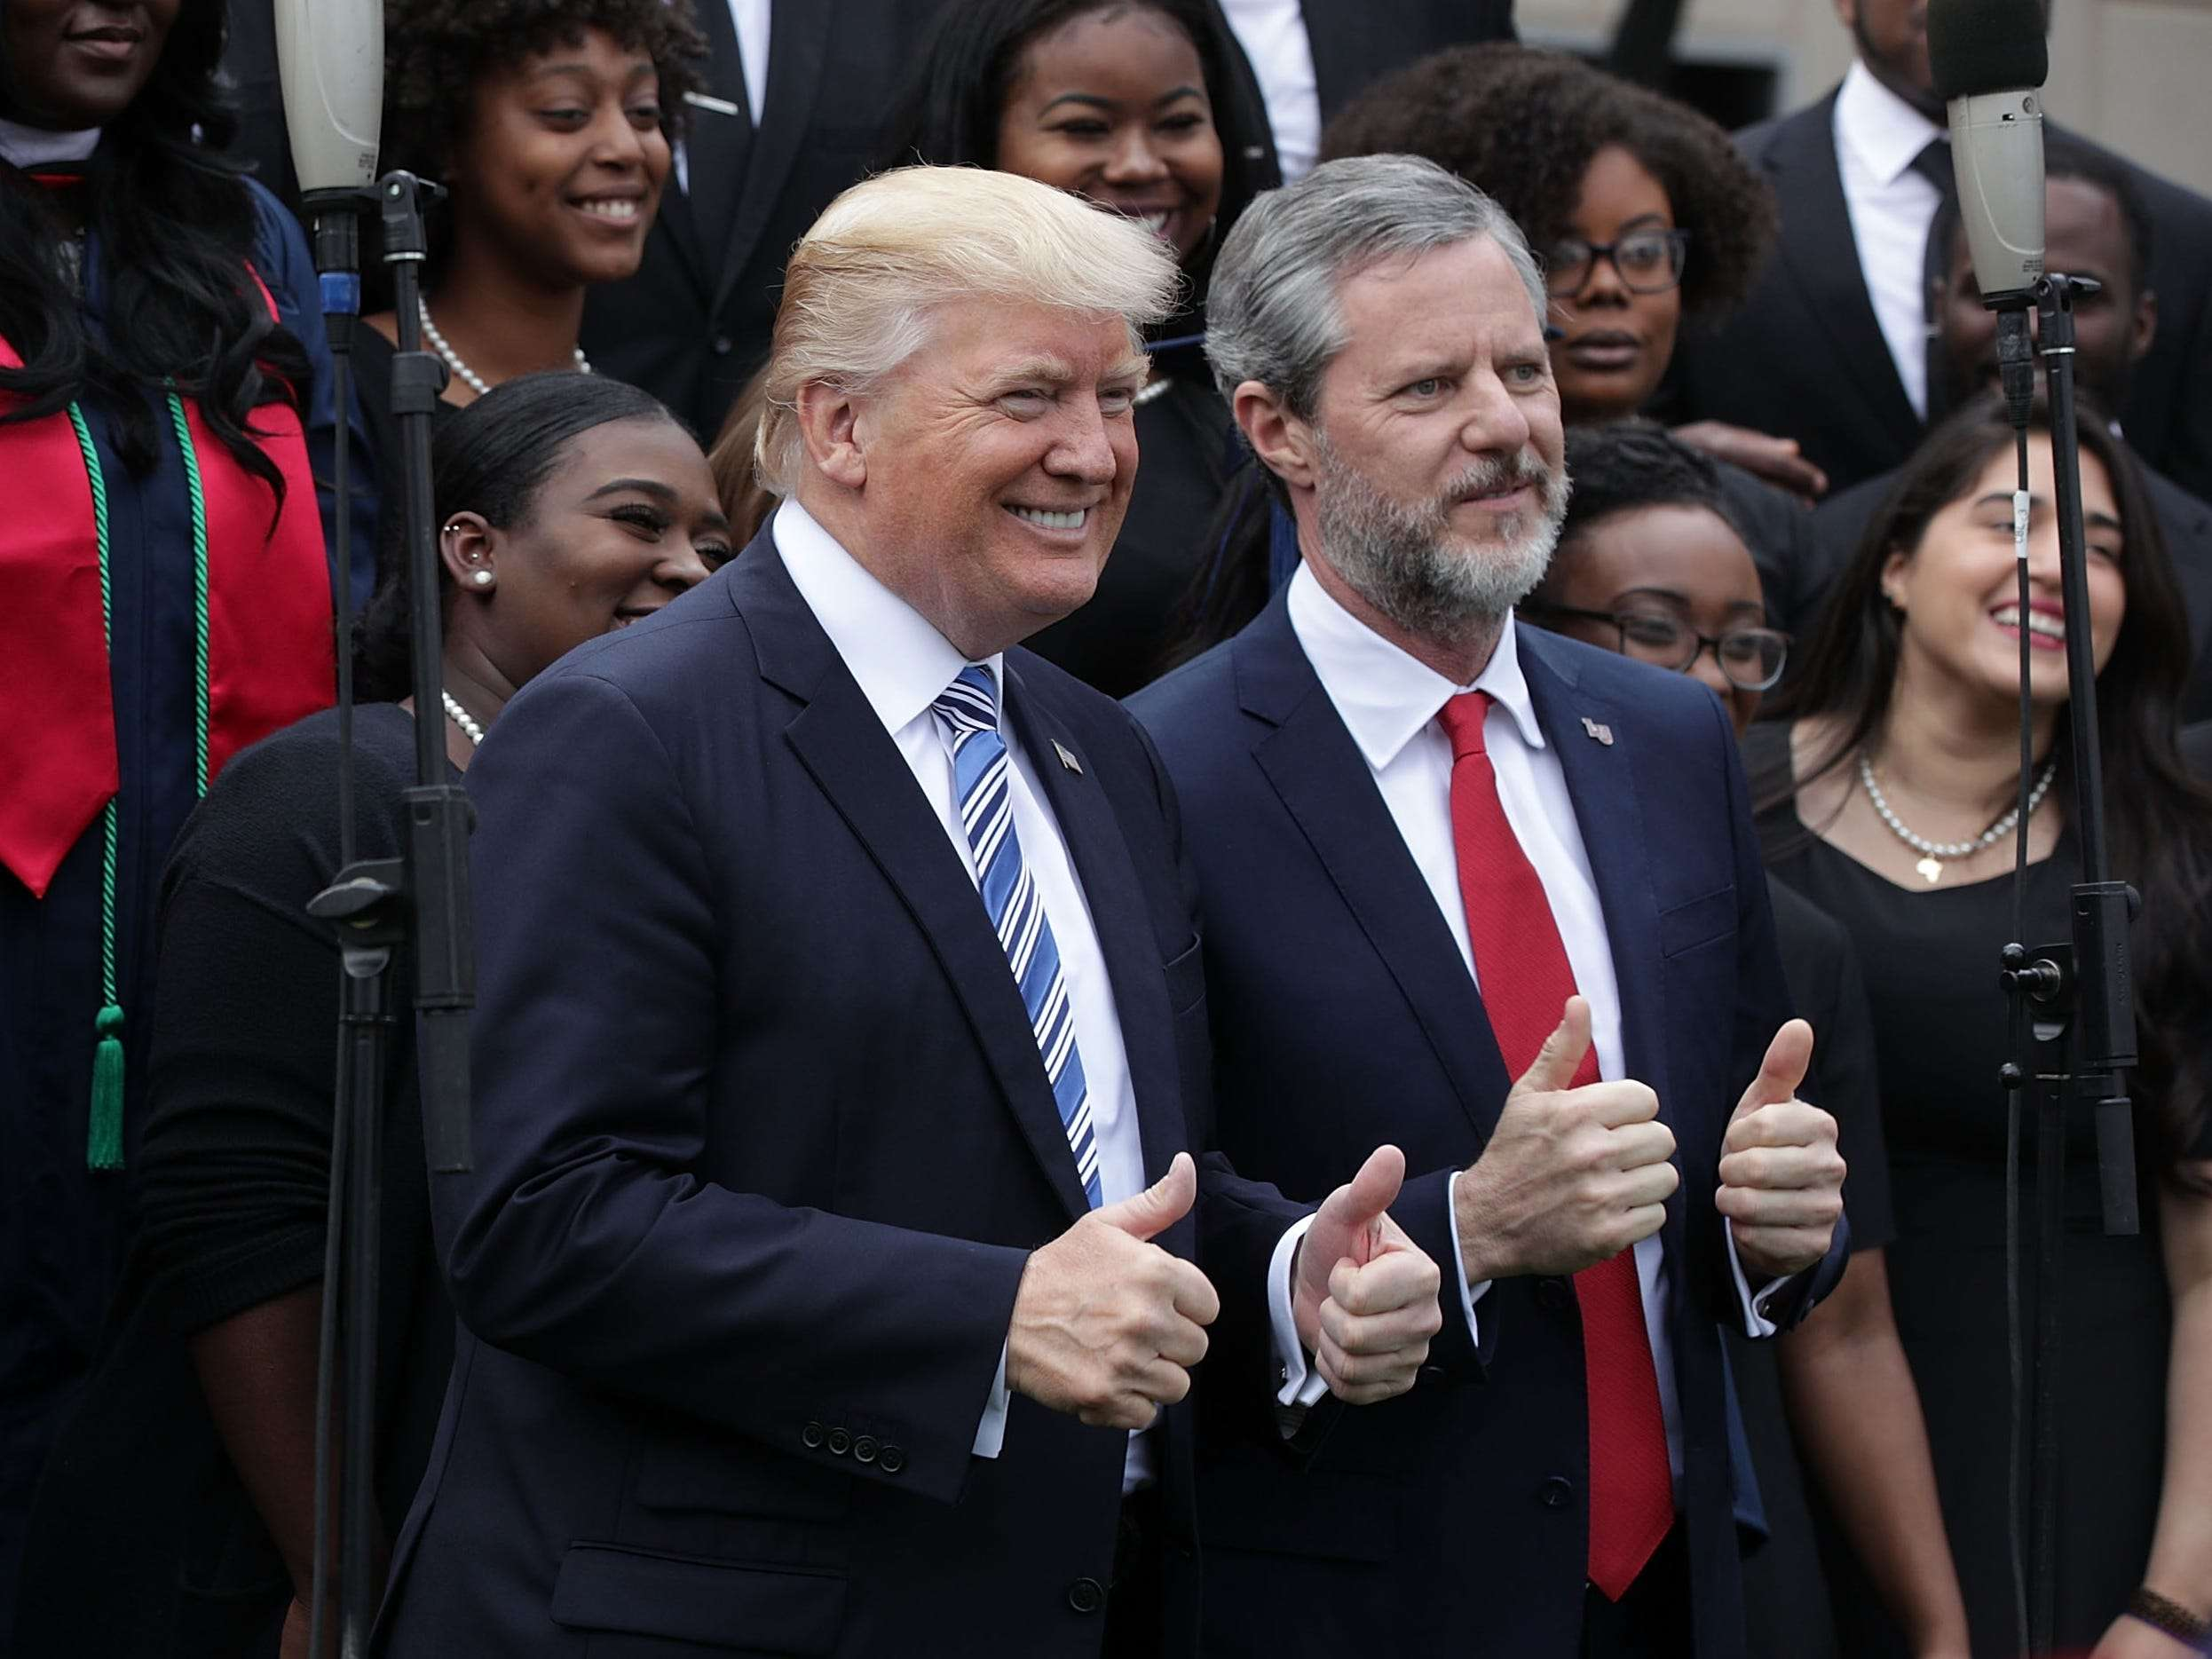 Michael Cohen negotiated with pool boy to stop Falwell